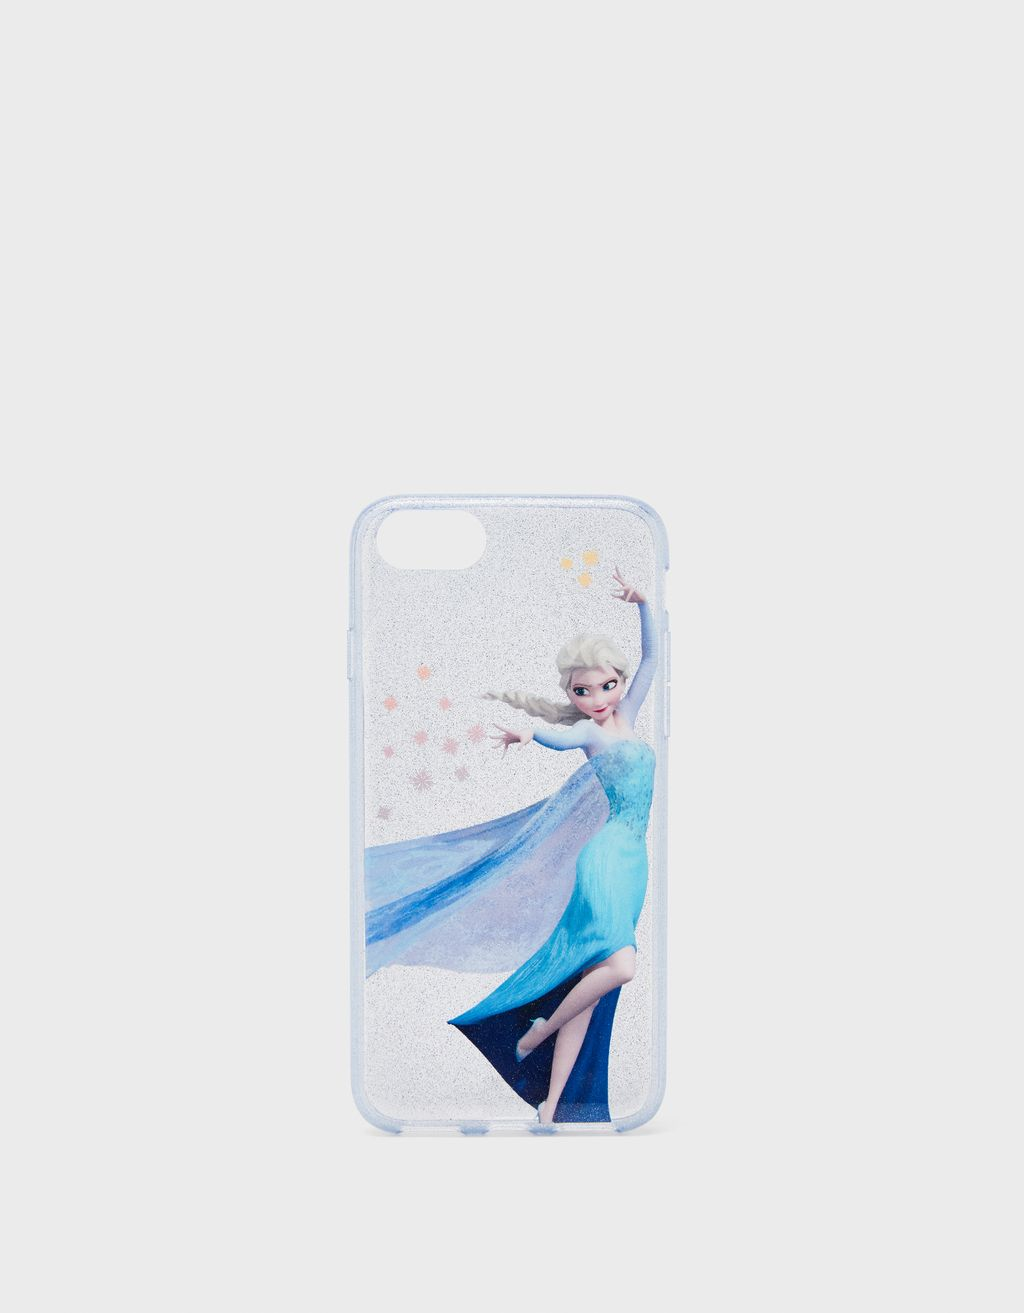 Coque La Reine des neiges iPhone 6/6S/7/8